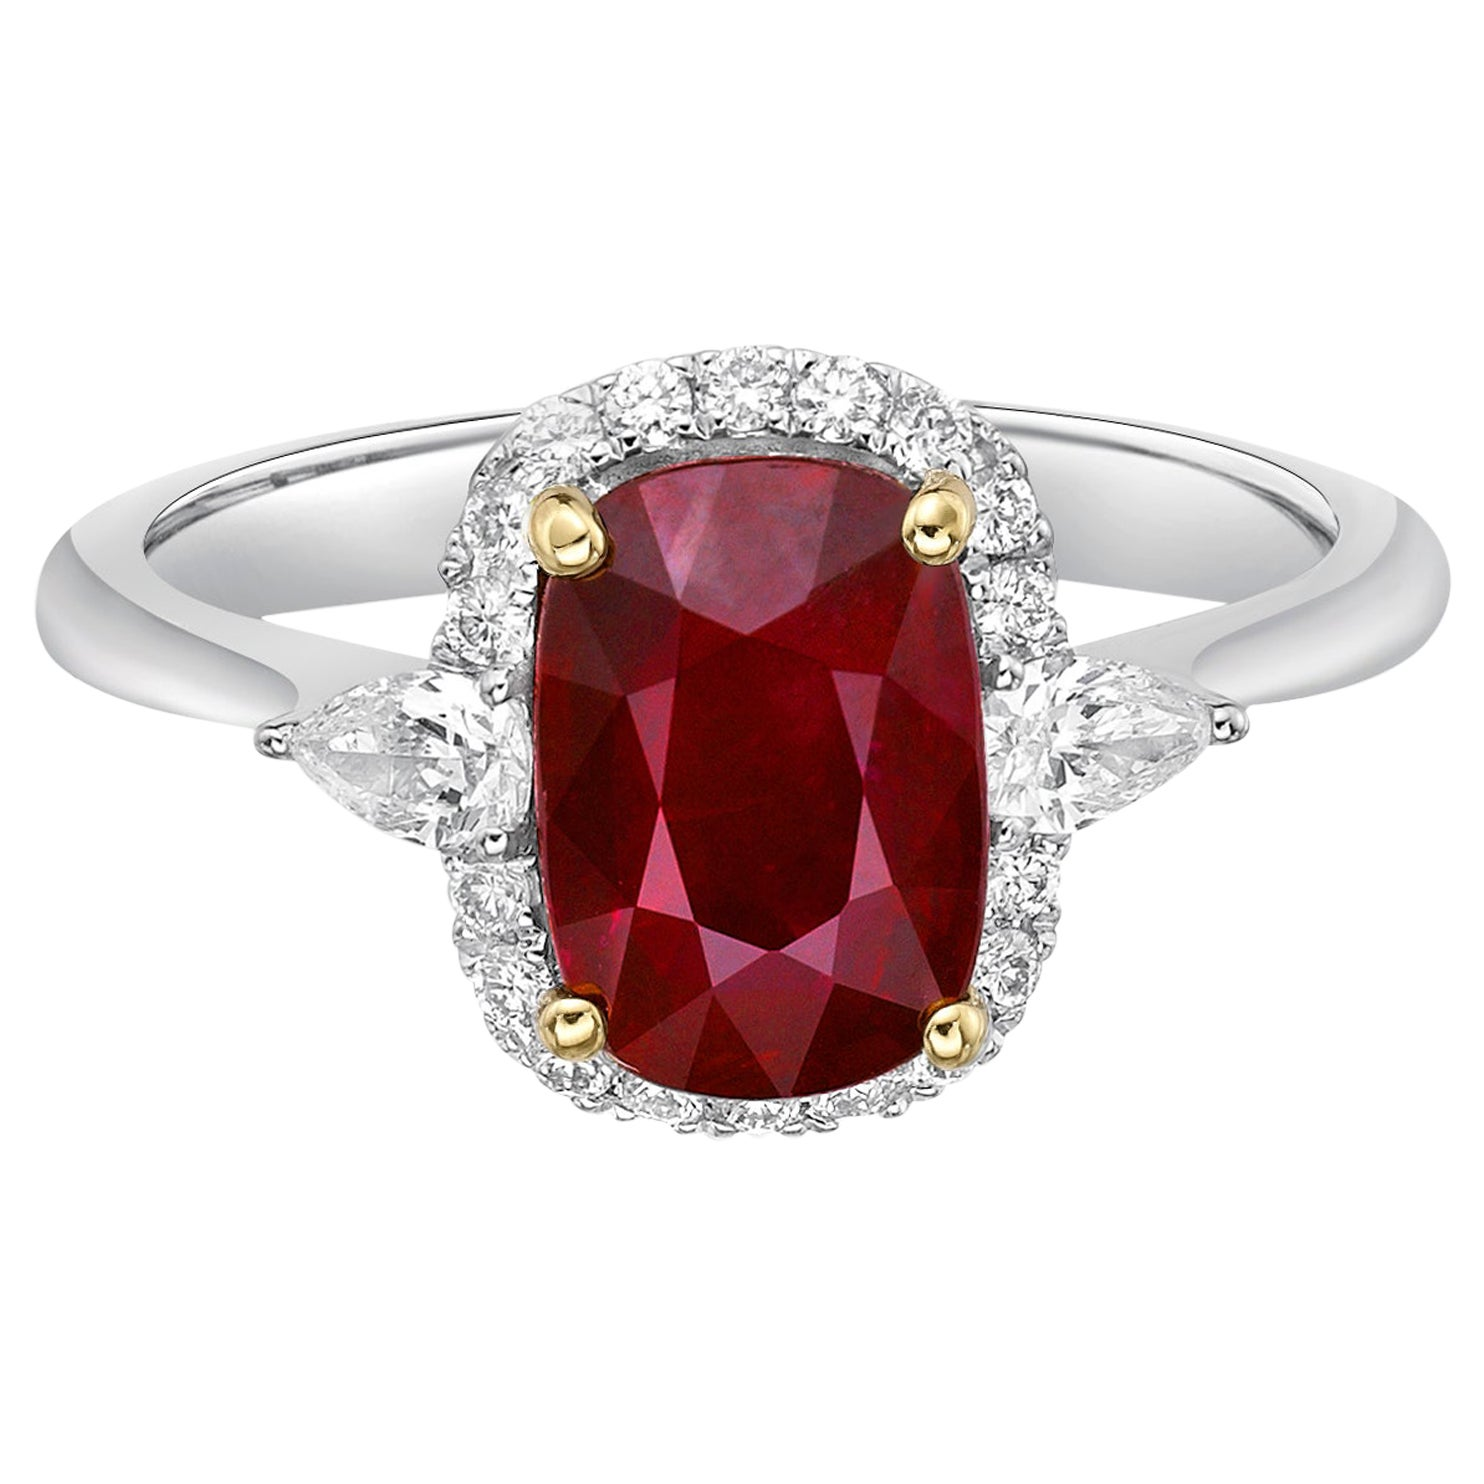 2.17 Carat Vivid Red Ruby GRS Certified Unheated Diamond Ring Cushion Cut